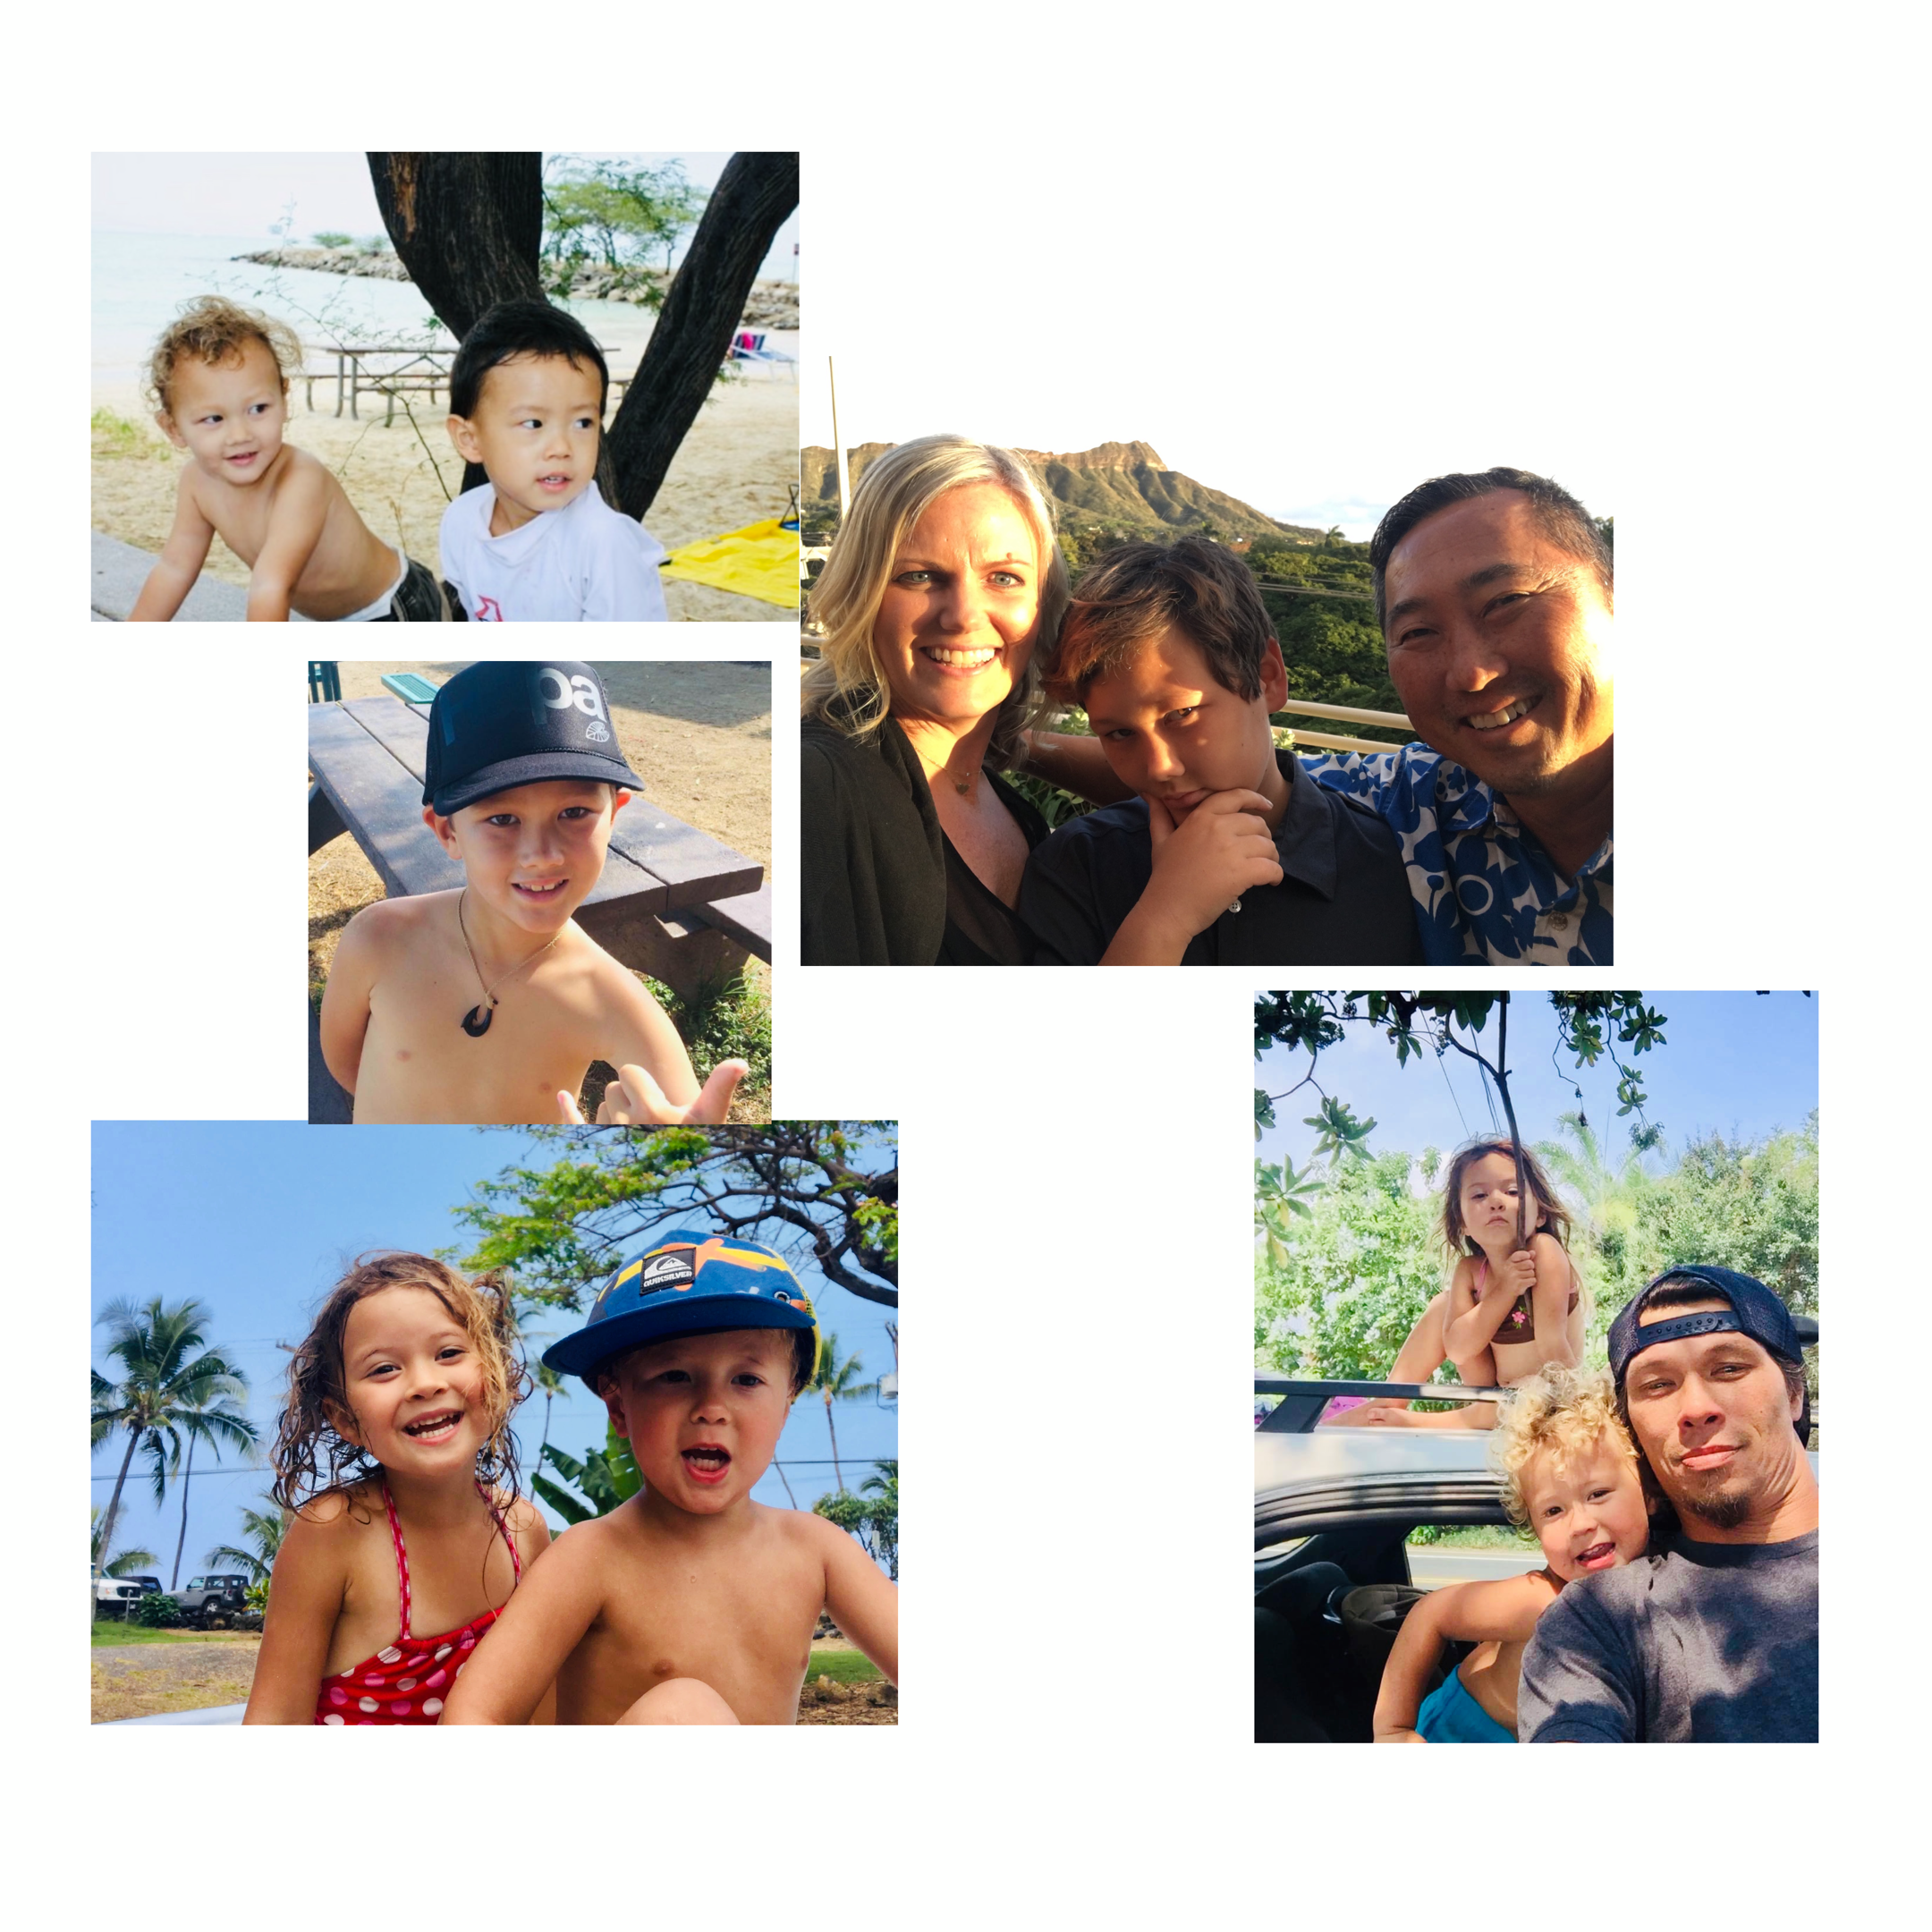 Safe for the Ohana - Ohana (Family) is special in Hawaii. Moms, Dads, Kupunas, Braddahs, Sistas, Uncles, Aunties and whoeva no like get Sunburn